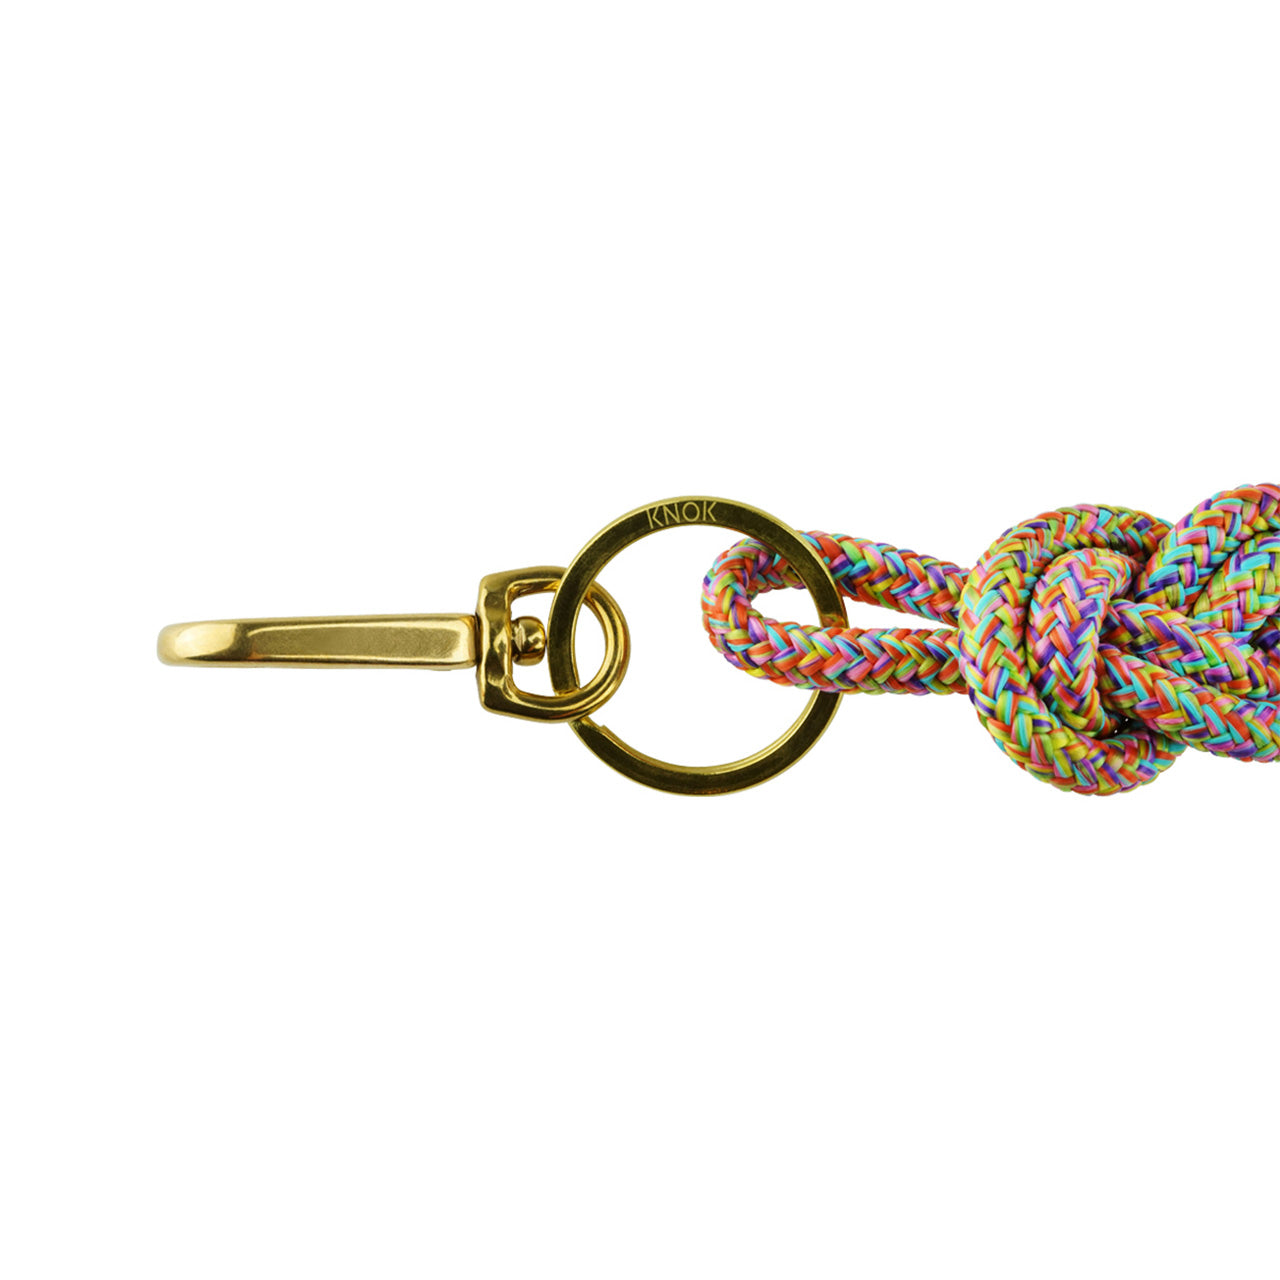 KNOK-KEY-KNOT-Unicorn